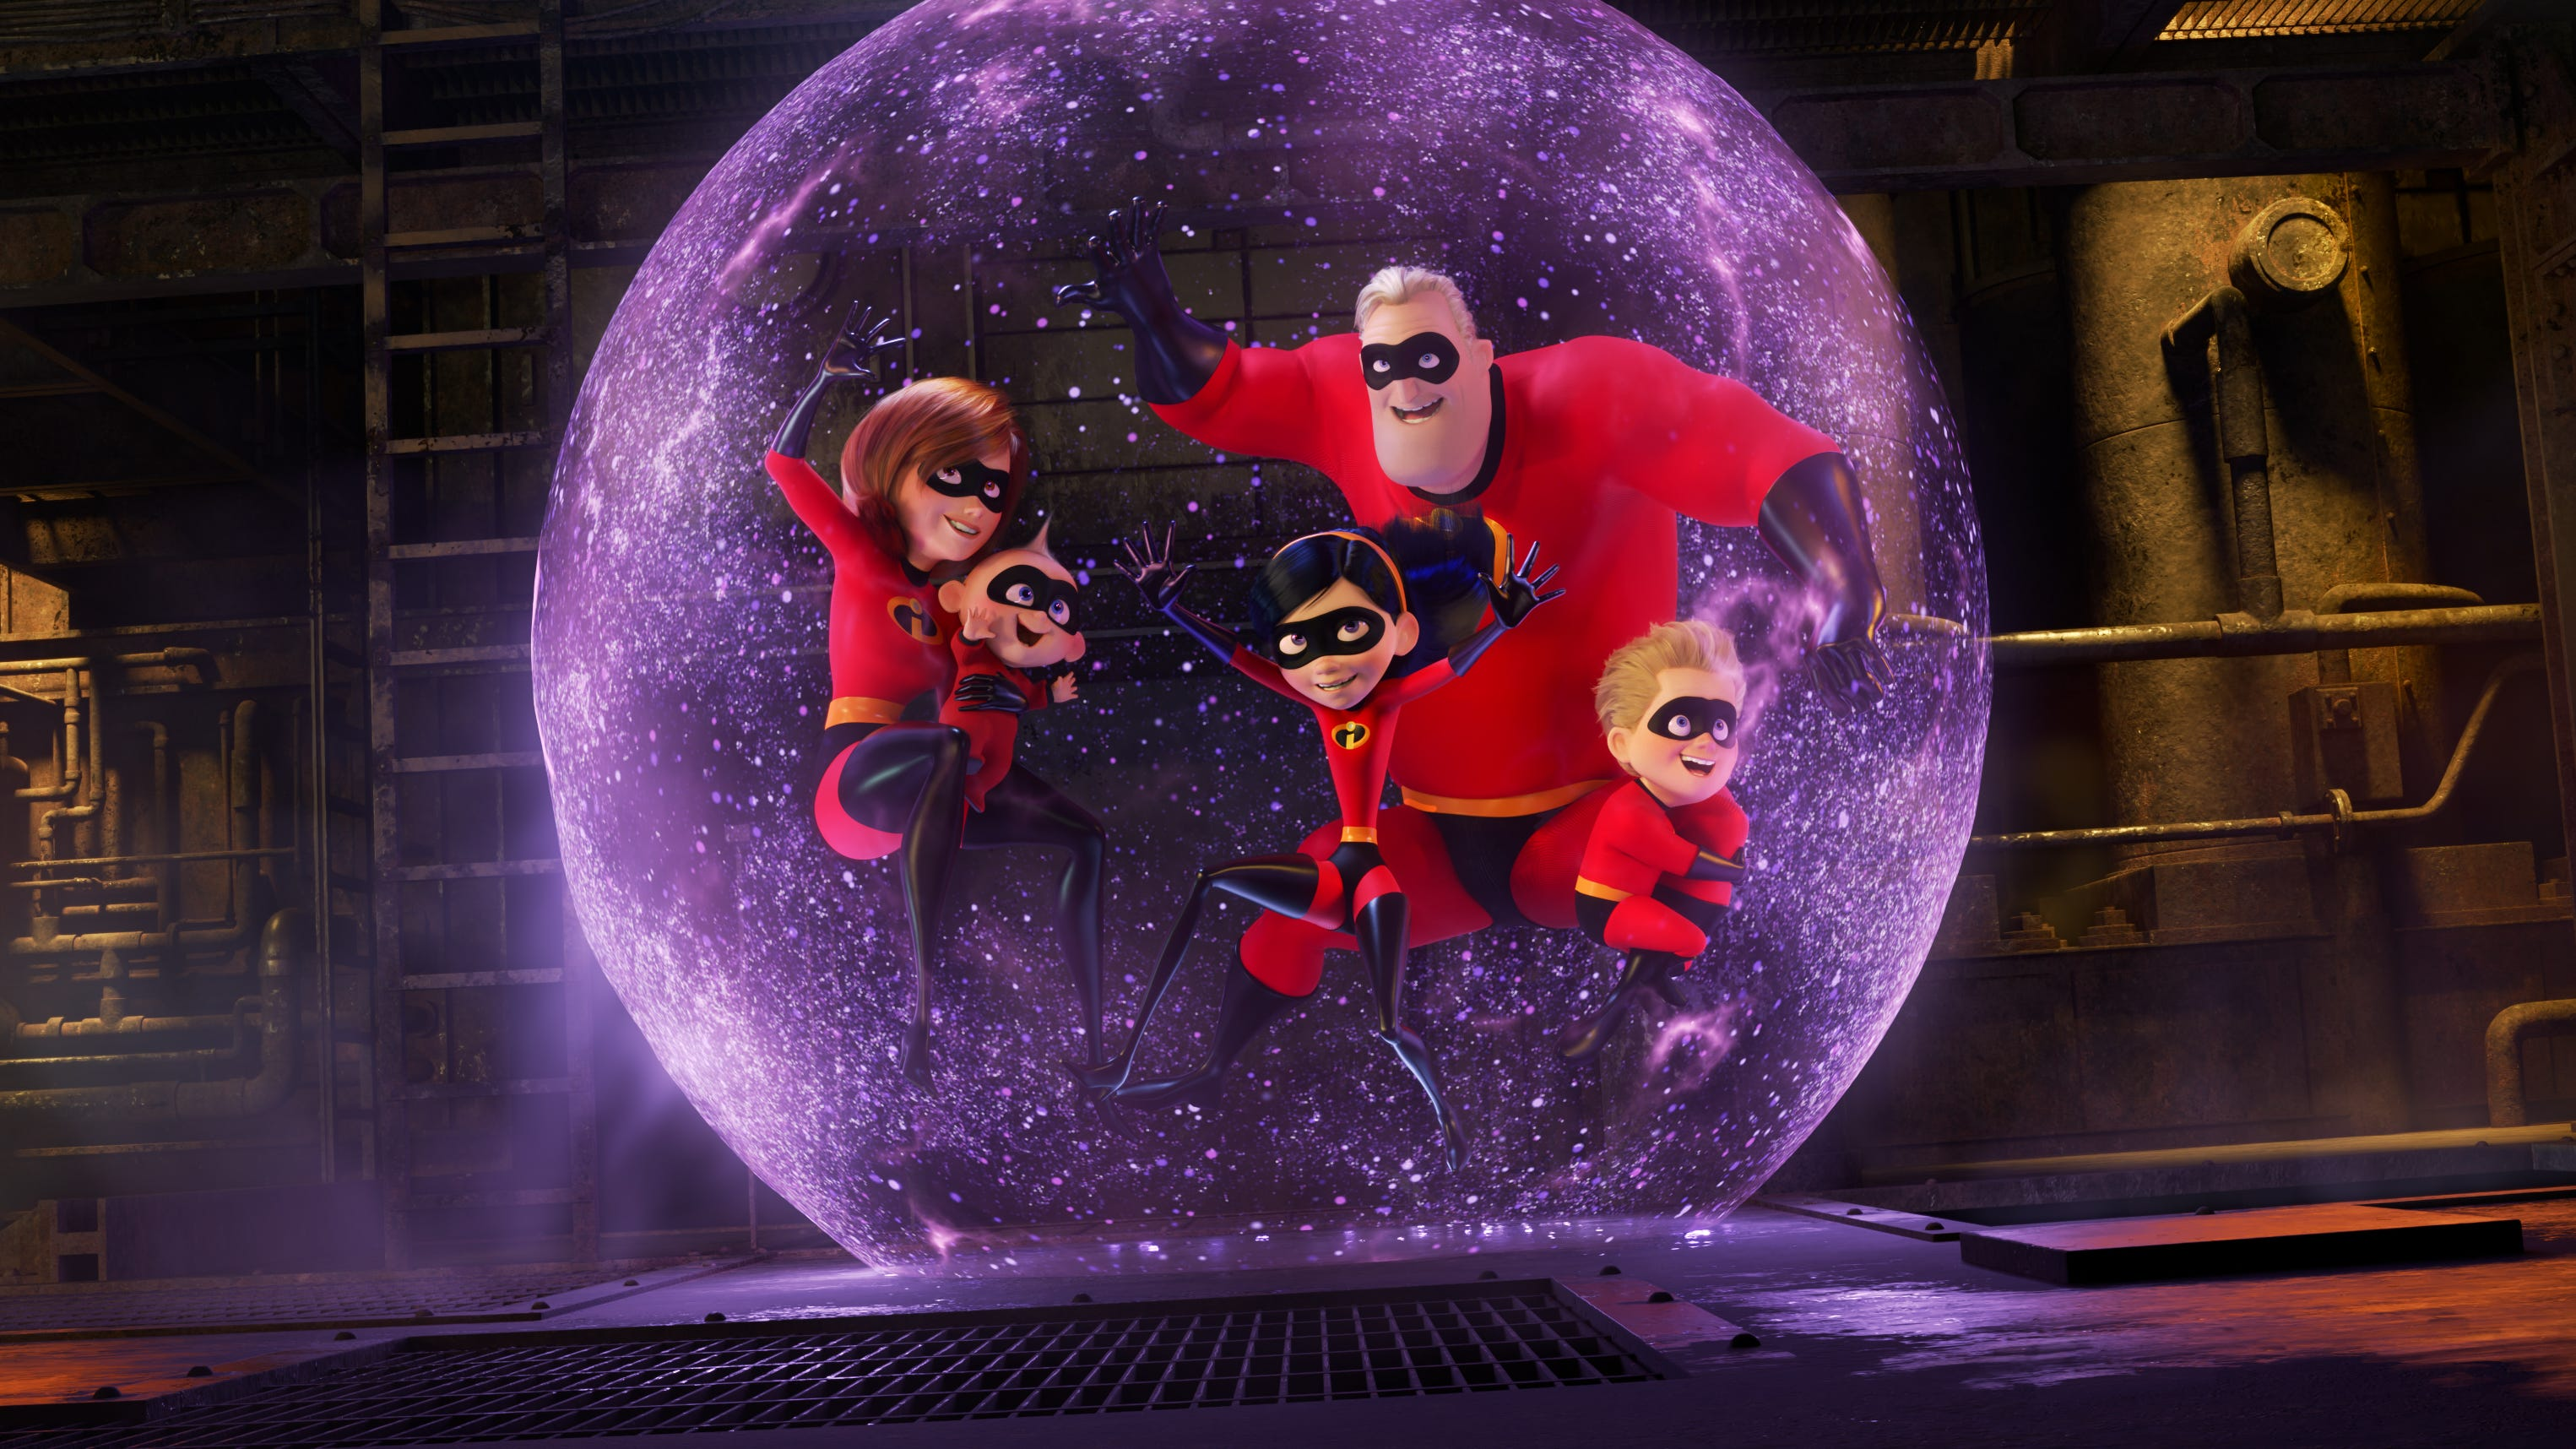 ears': 'Incredibles 2' getting some criticism for swears